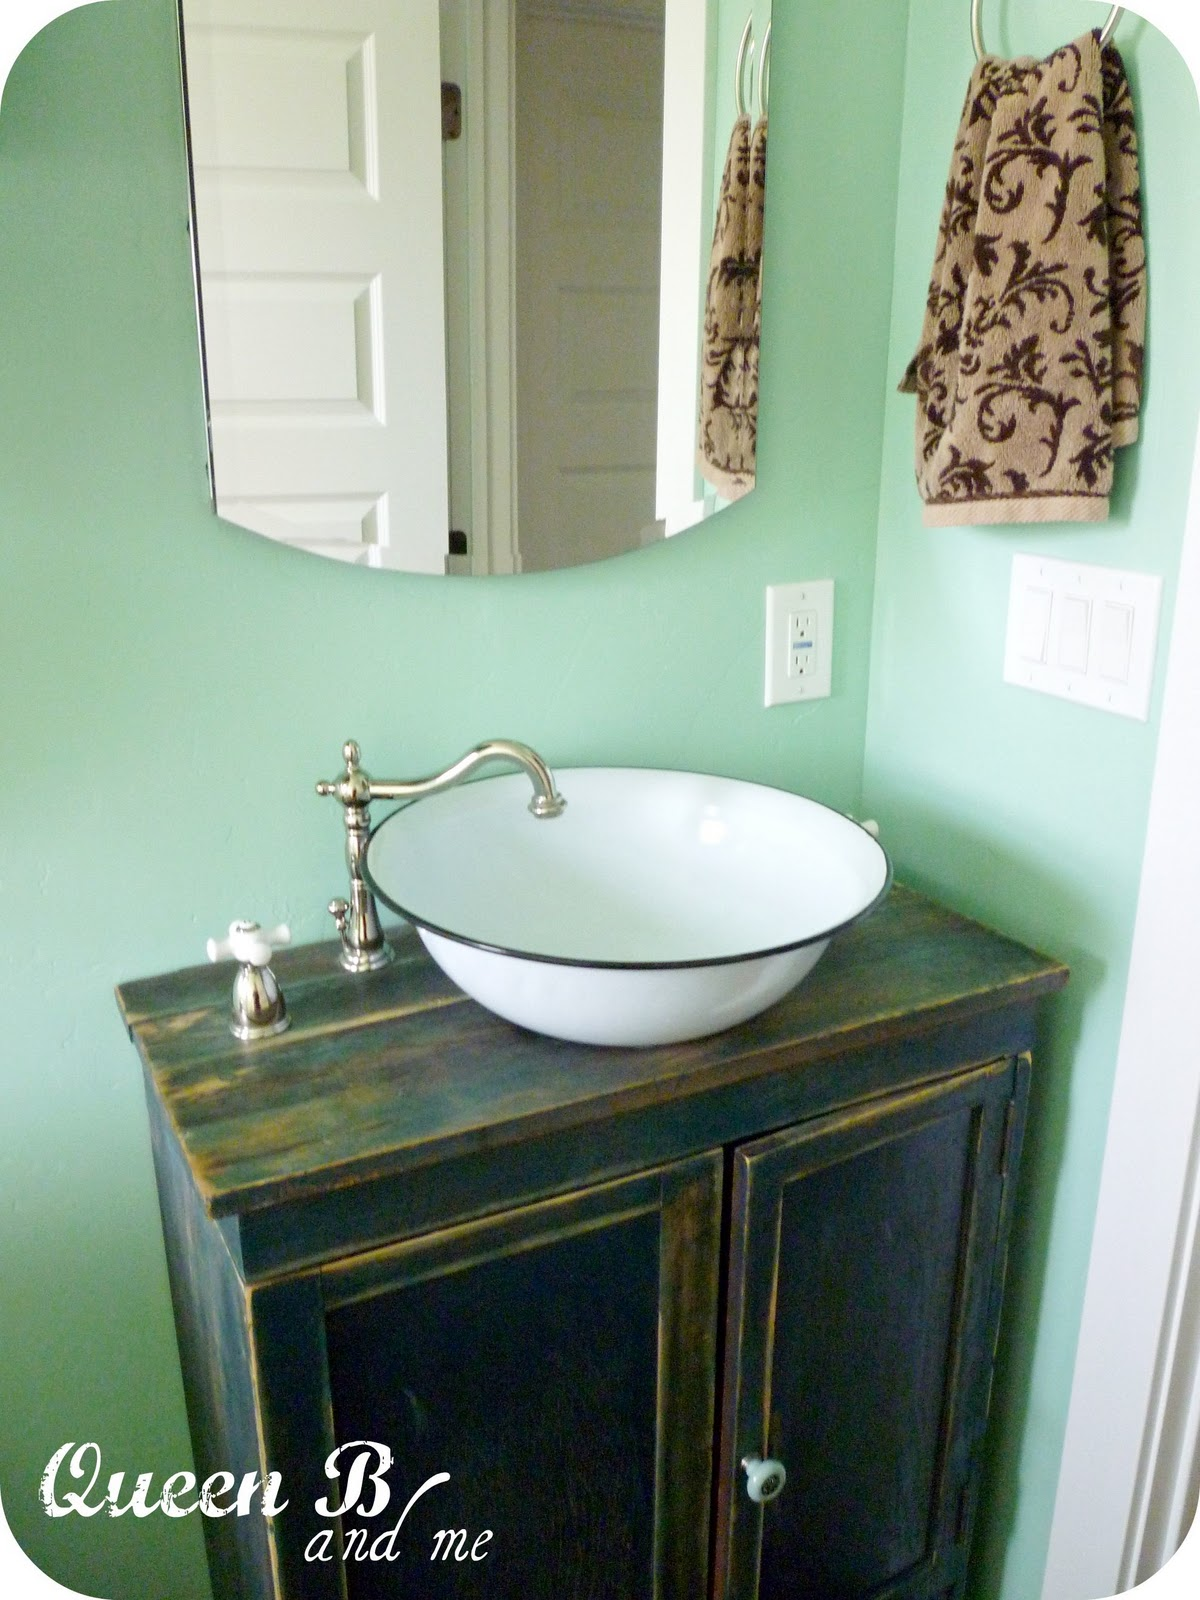 ... bowl into a sink! Bathroom Pinterest Sinks, Vessel Sink and DIY